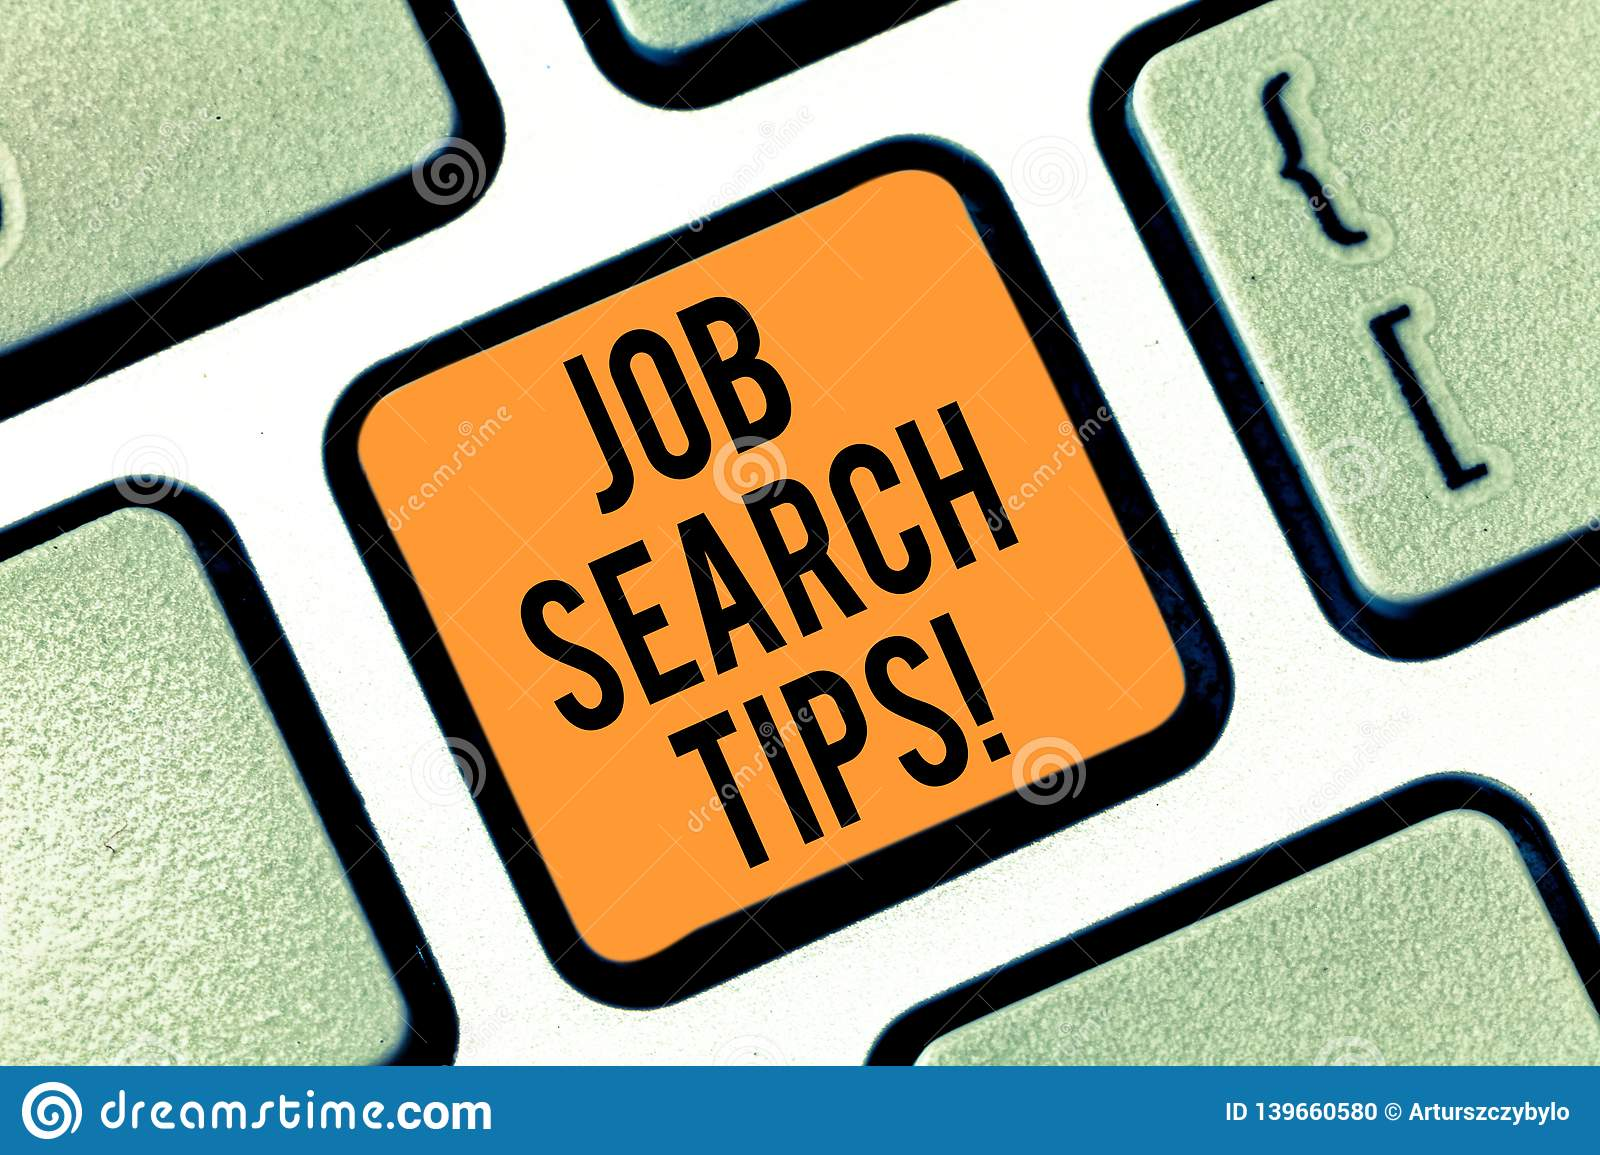 Text sign showing Job Search Tips. Conceptual photo Recommendations to make a good resume to obtain a position Keyboard